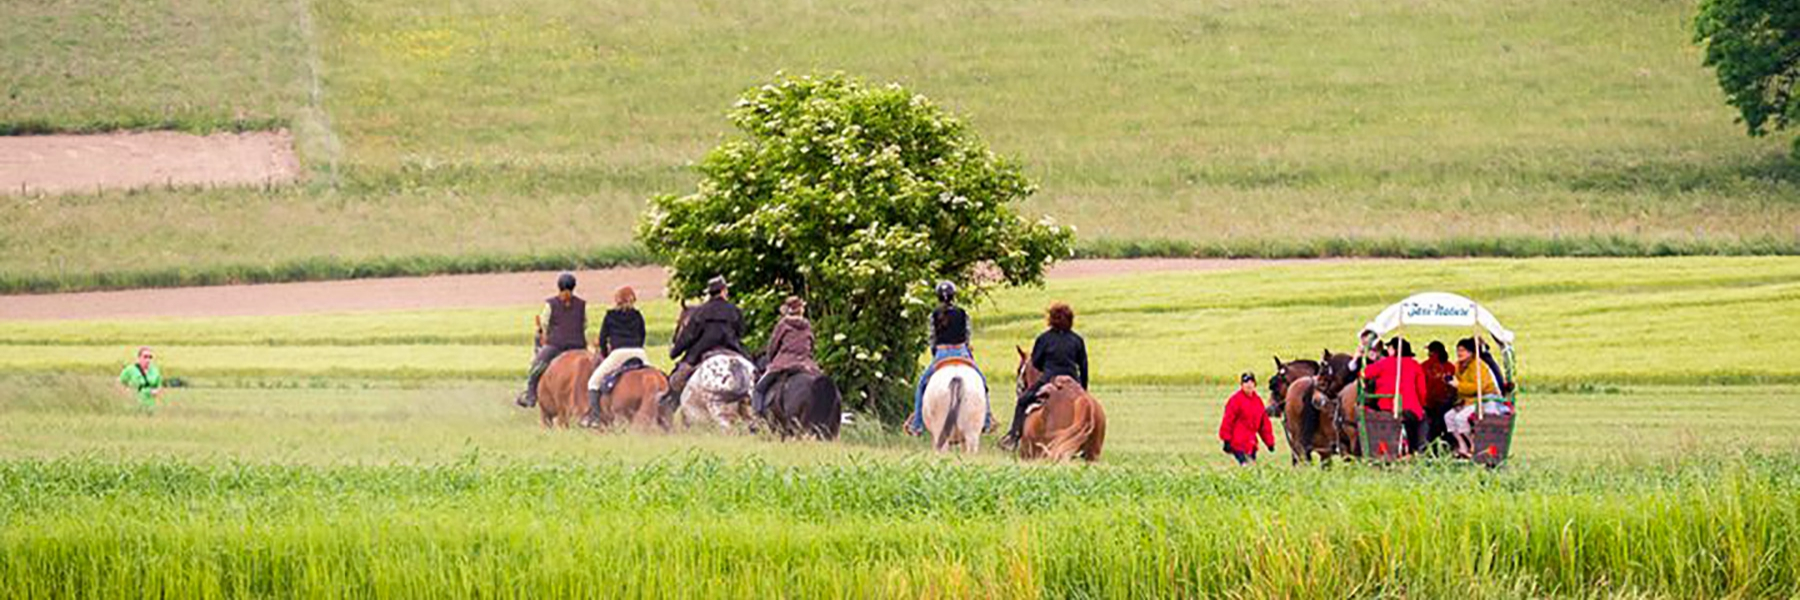 randonnee-equestre-isere-vals-dauphine_1800x600_acf_cropped